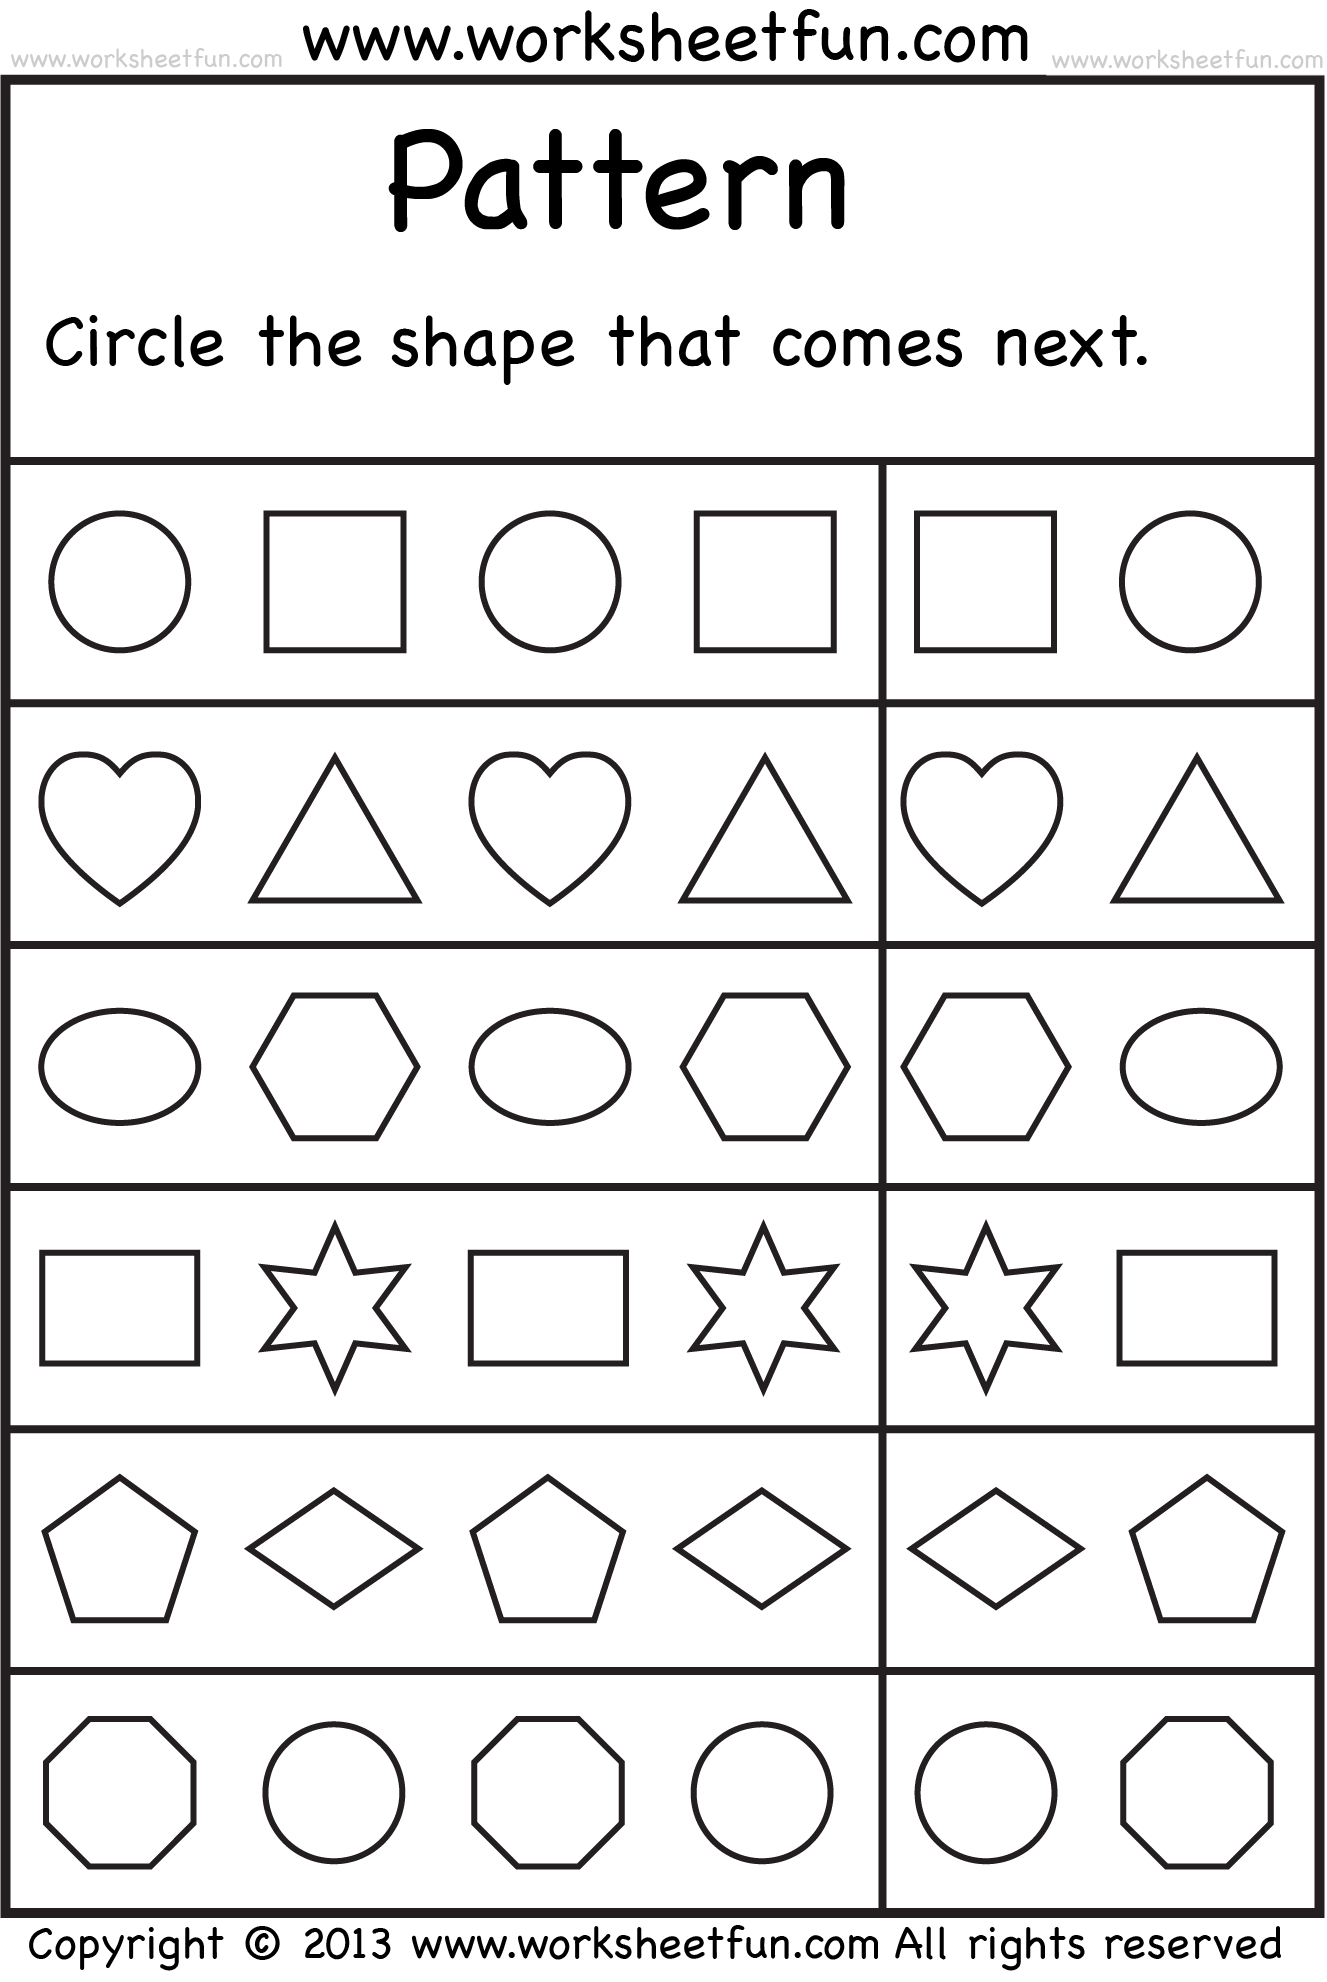 Weirdmailus  Marvelous  Images About School Worksheets On Pinterest  Number Words  With Exquisite  Images About School Worksheets On Pinterest  Number Words Alphabet Worksheets And Free Printable Kindergarten Worksheets With Beauteous Solving Systems Of Equations Using Elimination Worksheet Also Setting Of A Story Worksheets In Addition Worksheet Function And Multiplication And Division Facts Worksheet As Well As Complete Subjects And Predicates Worksheets Additionally Interjection Worksheet From Pinterestcom With Weirdmailus  Exquisite  Images About School Worksheets On Pinterest  Number Words  With Beauteous  Images About School Worksheets On Pinterest  Number Words Alphabet Worksheets And Free Printable Kindergarten Worksheets And Marvelous Solving Systems Of Equations Using Elimination Worksheet Also Setting Of A Story Worksheets In Addition Worksheet Function From Pinterestcom